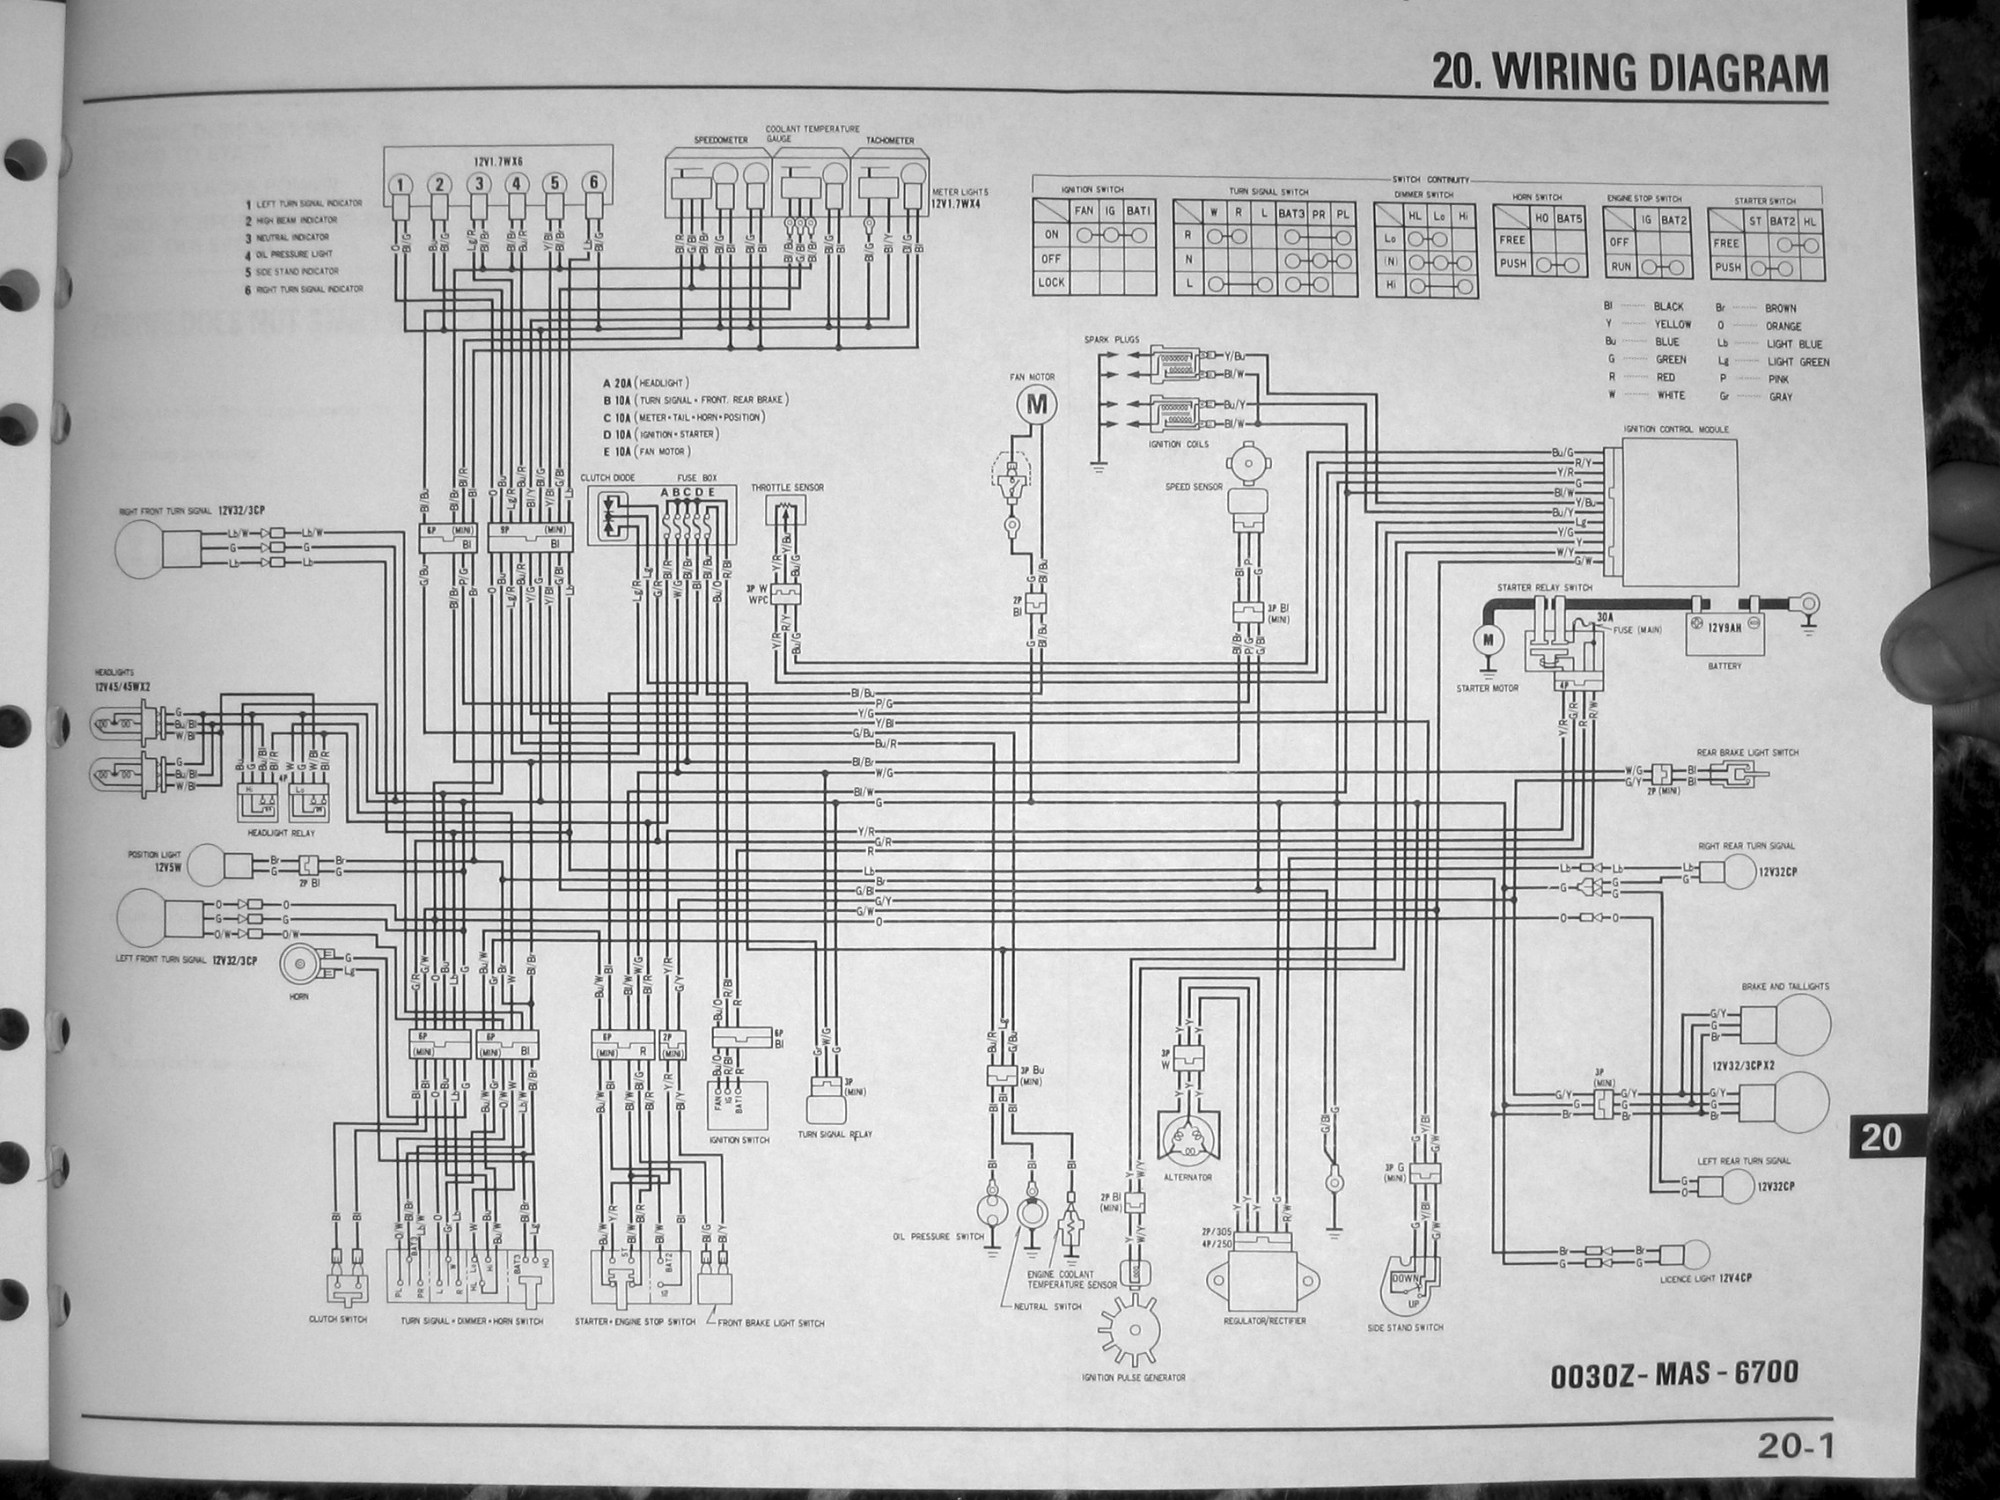 hight resolution of 2005 suzuki gsxr 600 wiring diagram 2005 suzuki eiger 2005 gsxr 750 headlight wiring diagram 2005 gsxr 750 headlight wiring diagram